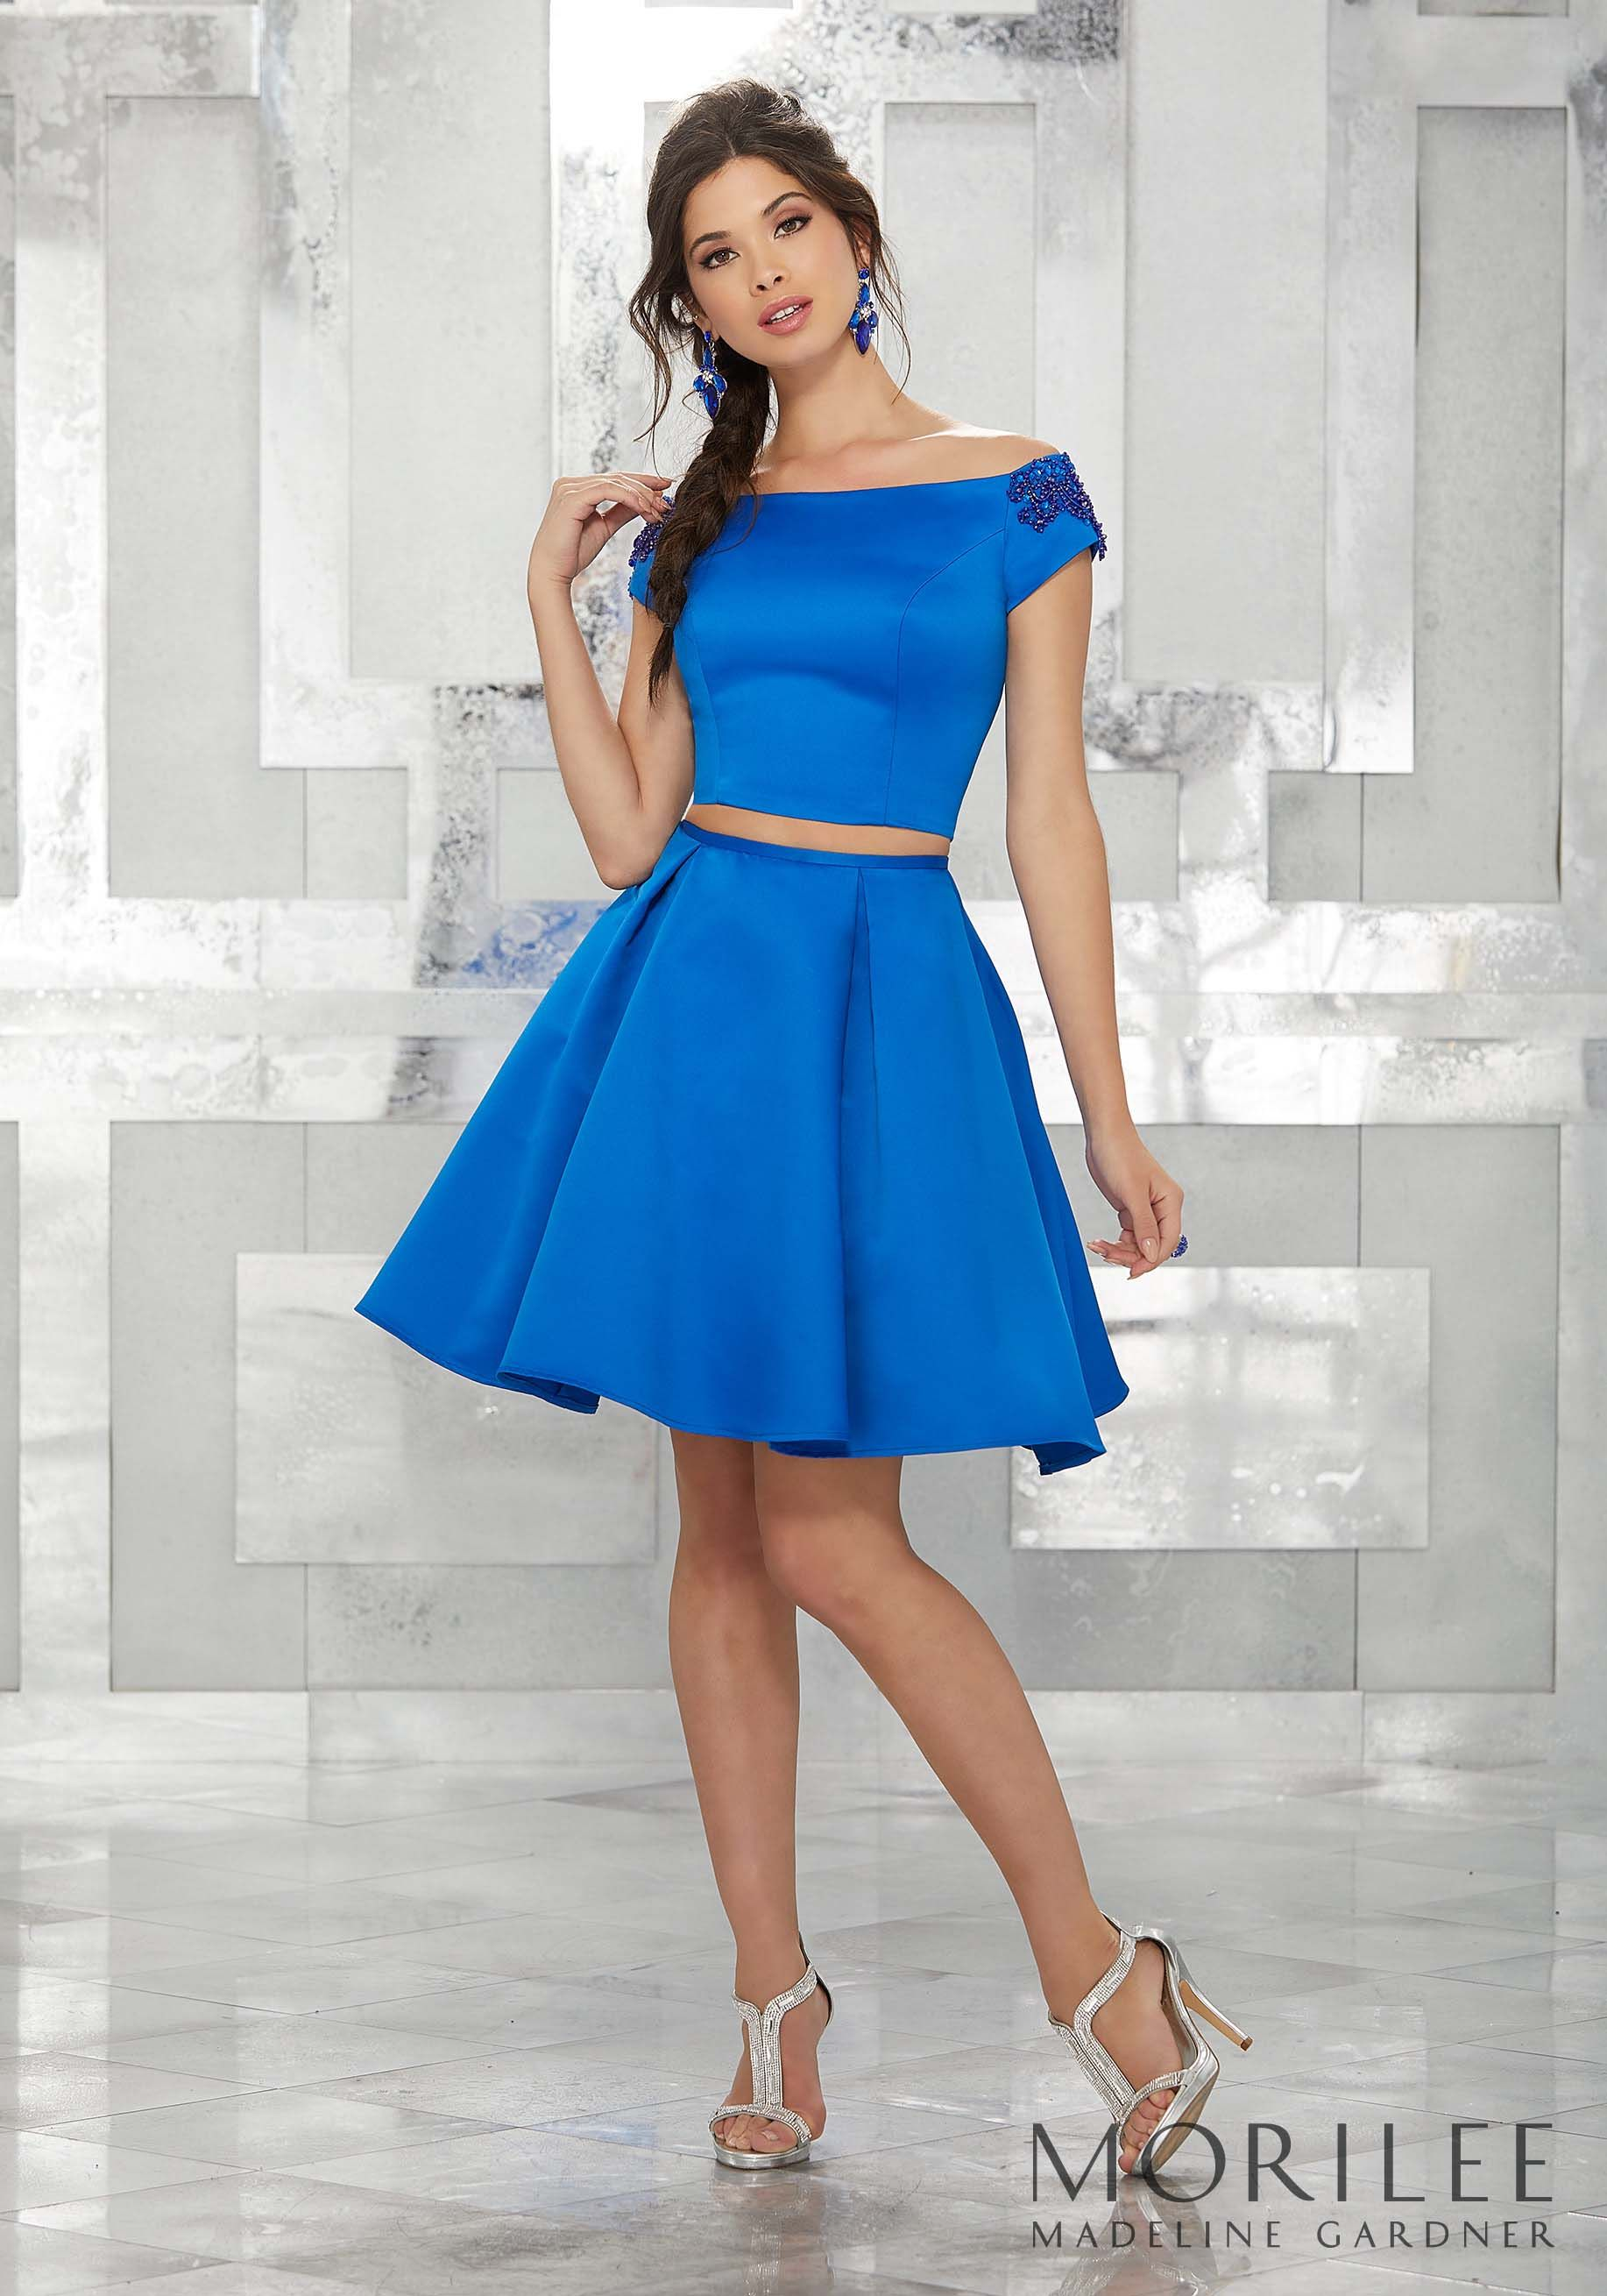 Blue Two Piece Satin Party Dress With Beaded Off The Shoulder Cap Sleeves Colors Available Royal Fuchsia Black Black Cherry Babe Dress Party Dress Dresses [ 2620 x 1834 Pixel ]